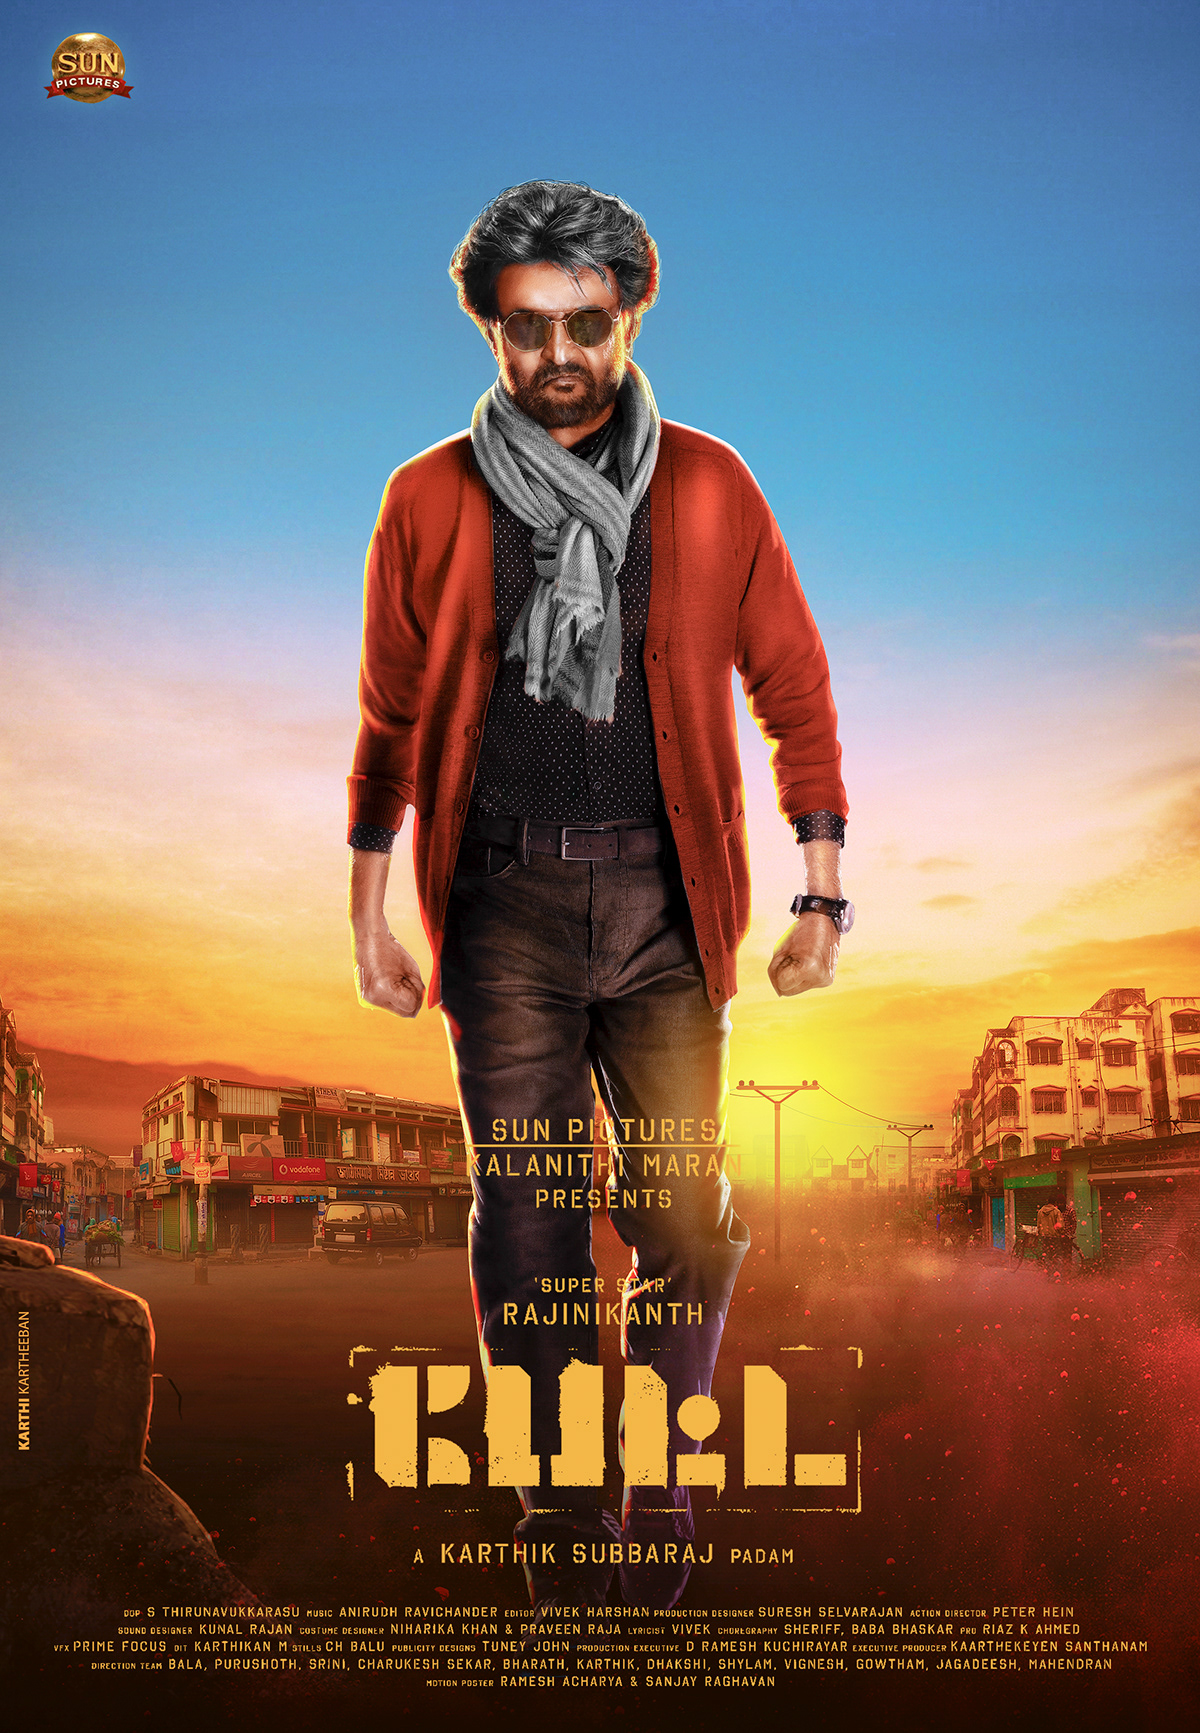 petta poster on student show petta poster on student show